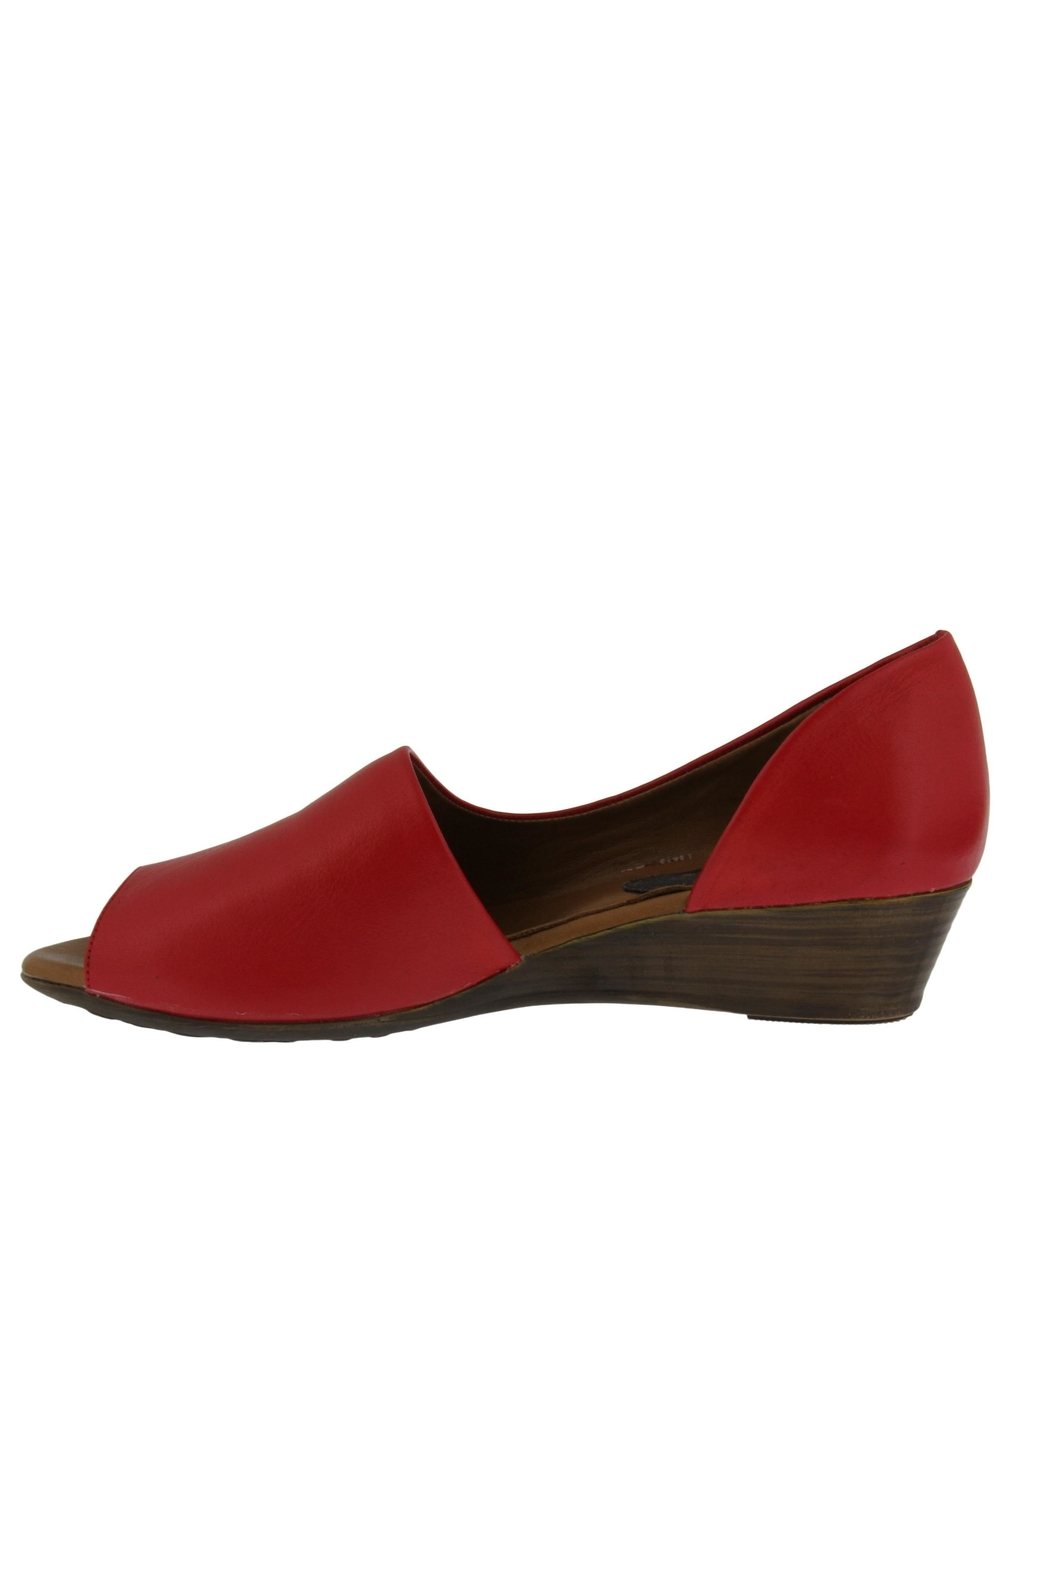 Spring Footwear Passion Red Peep-Toe - Front Full Image